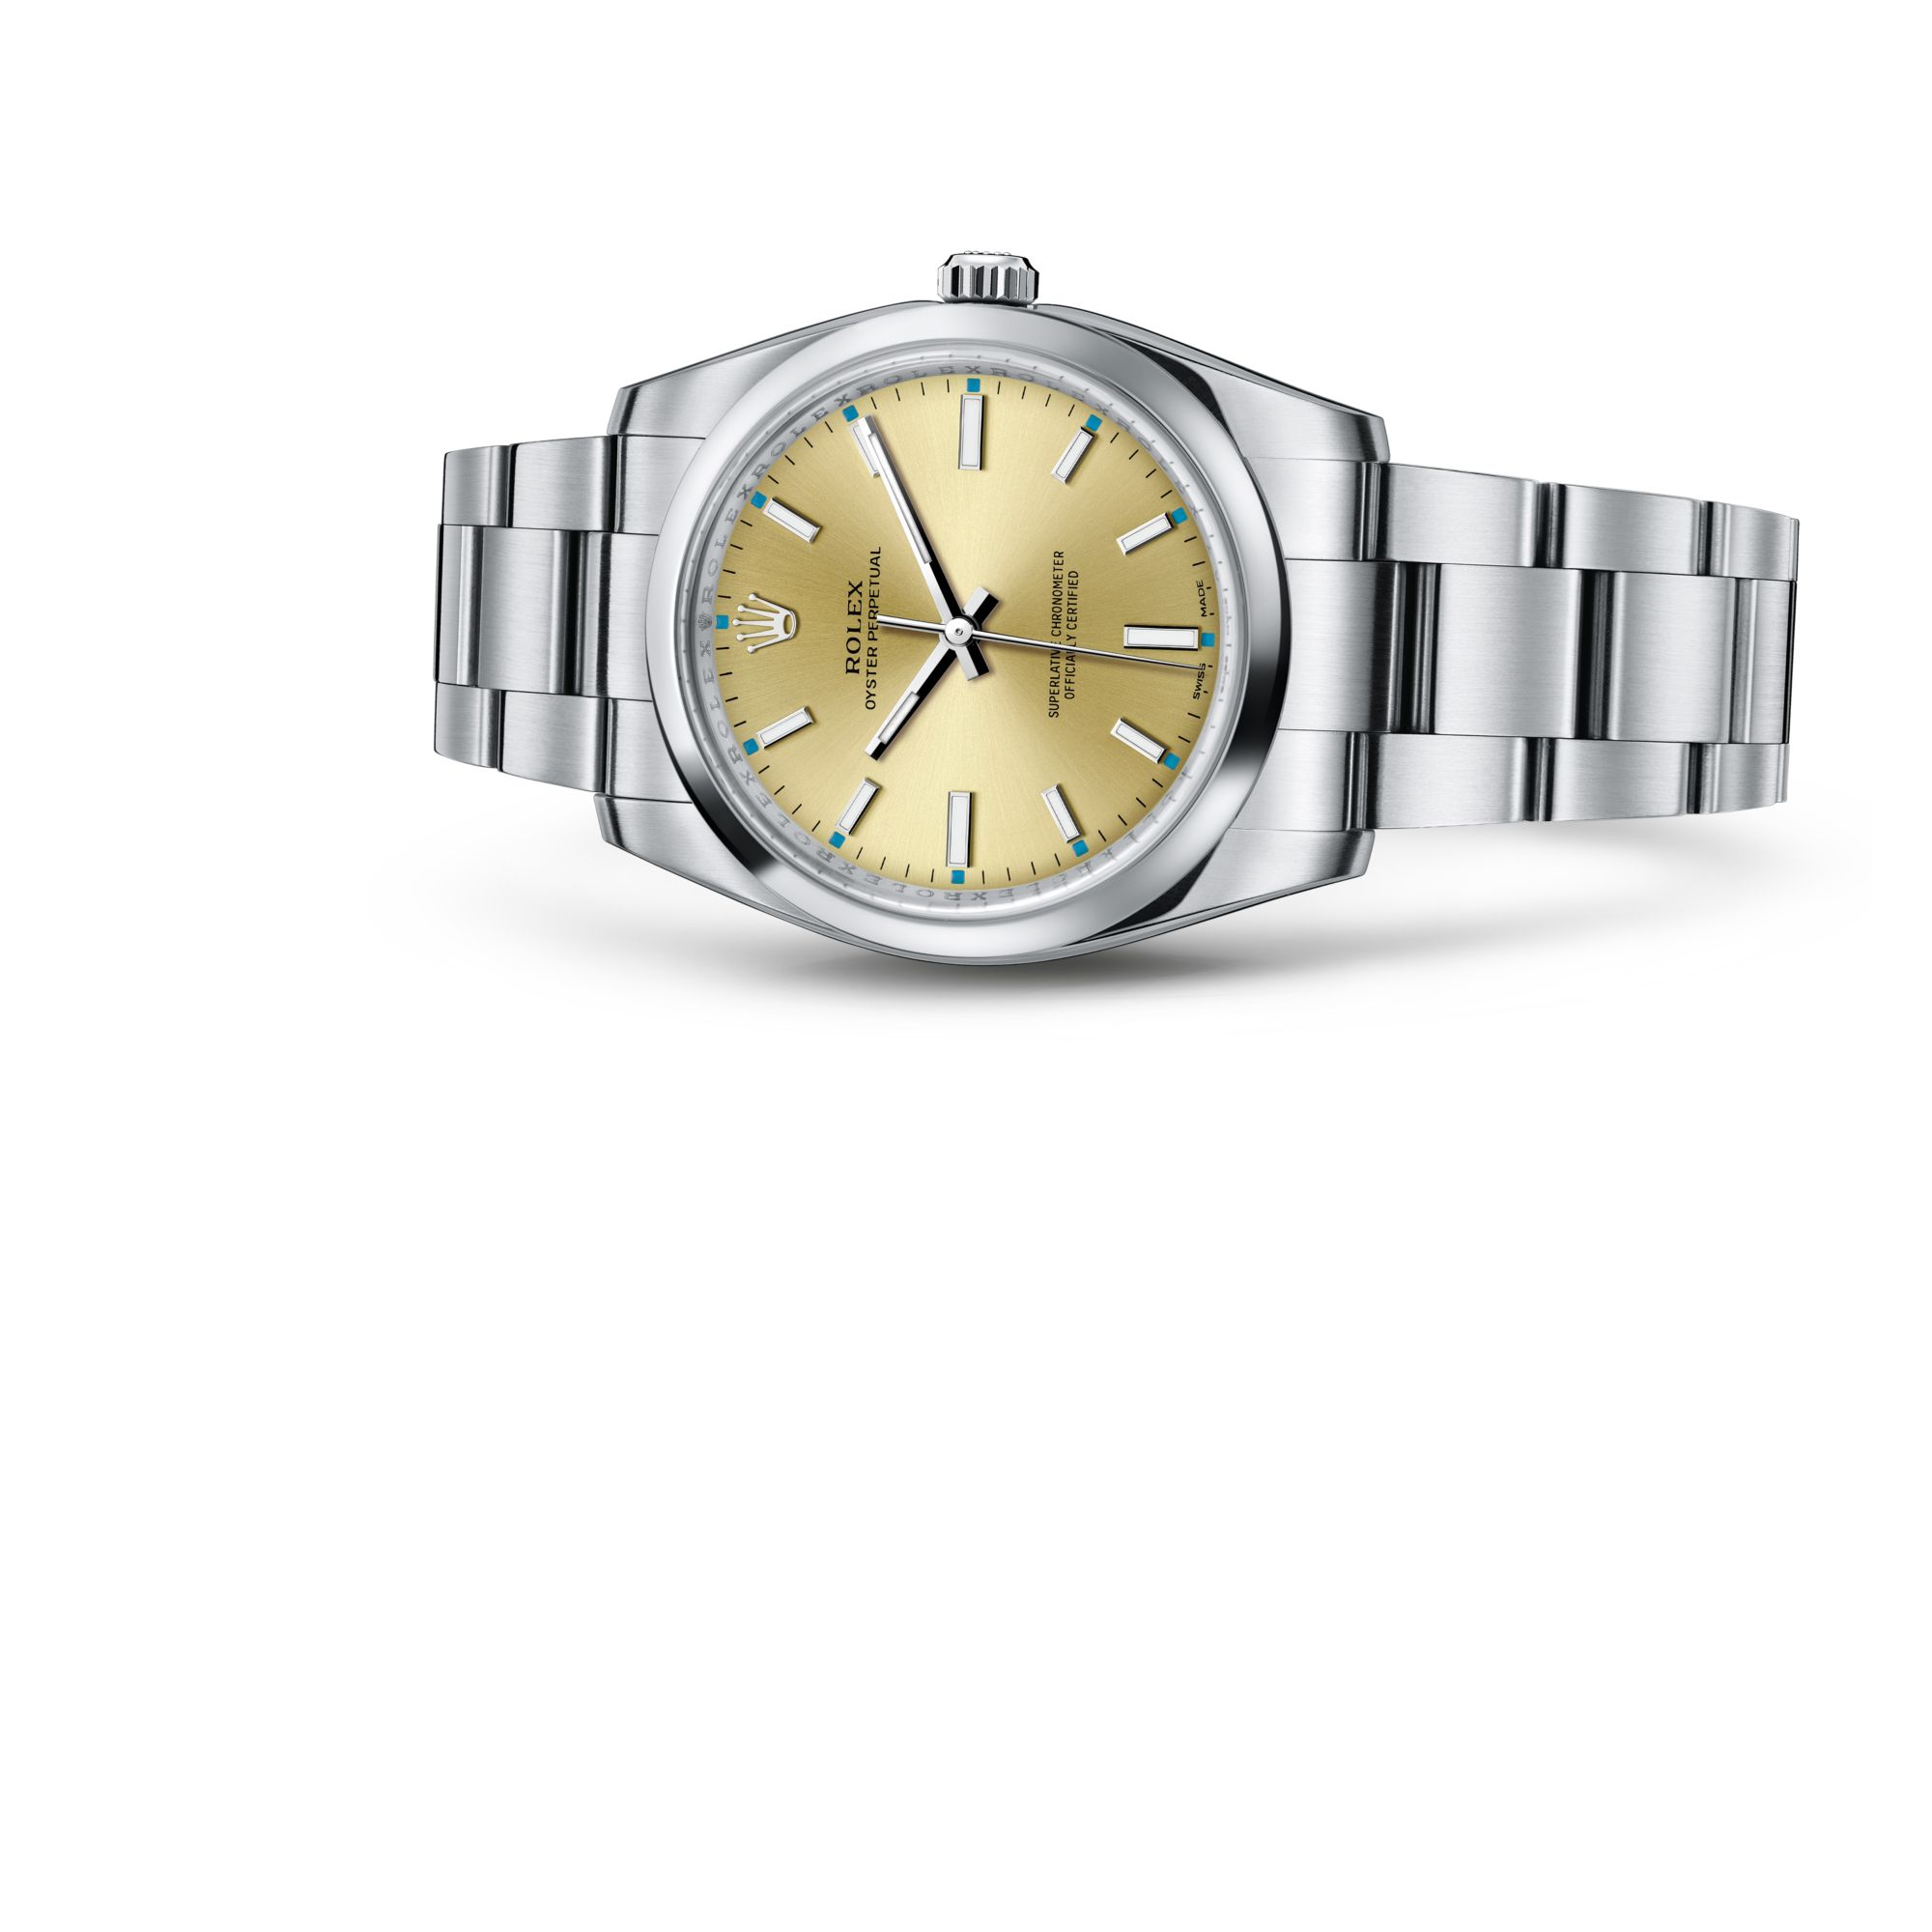 Rolex Oyster Perpetual 34 M114200-0022